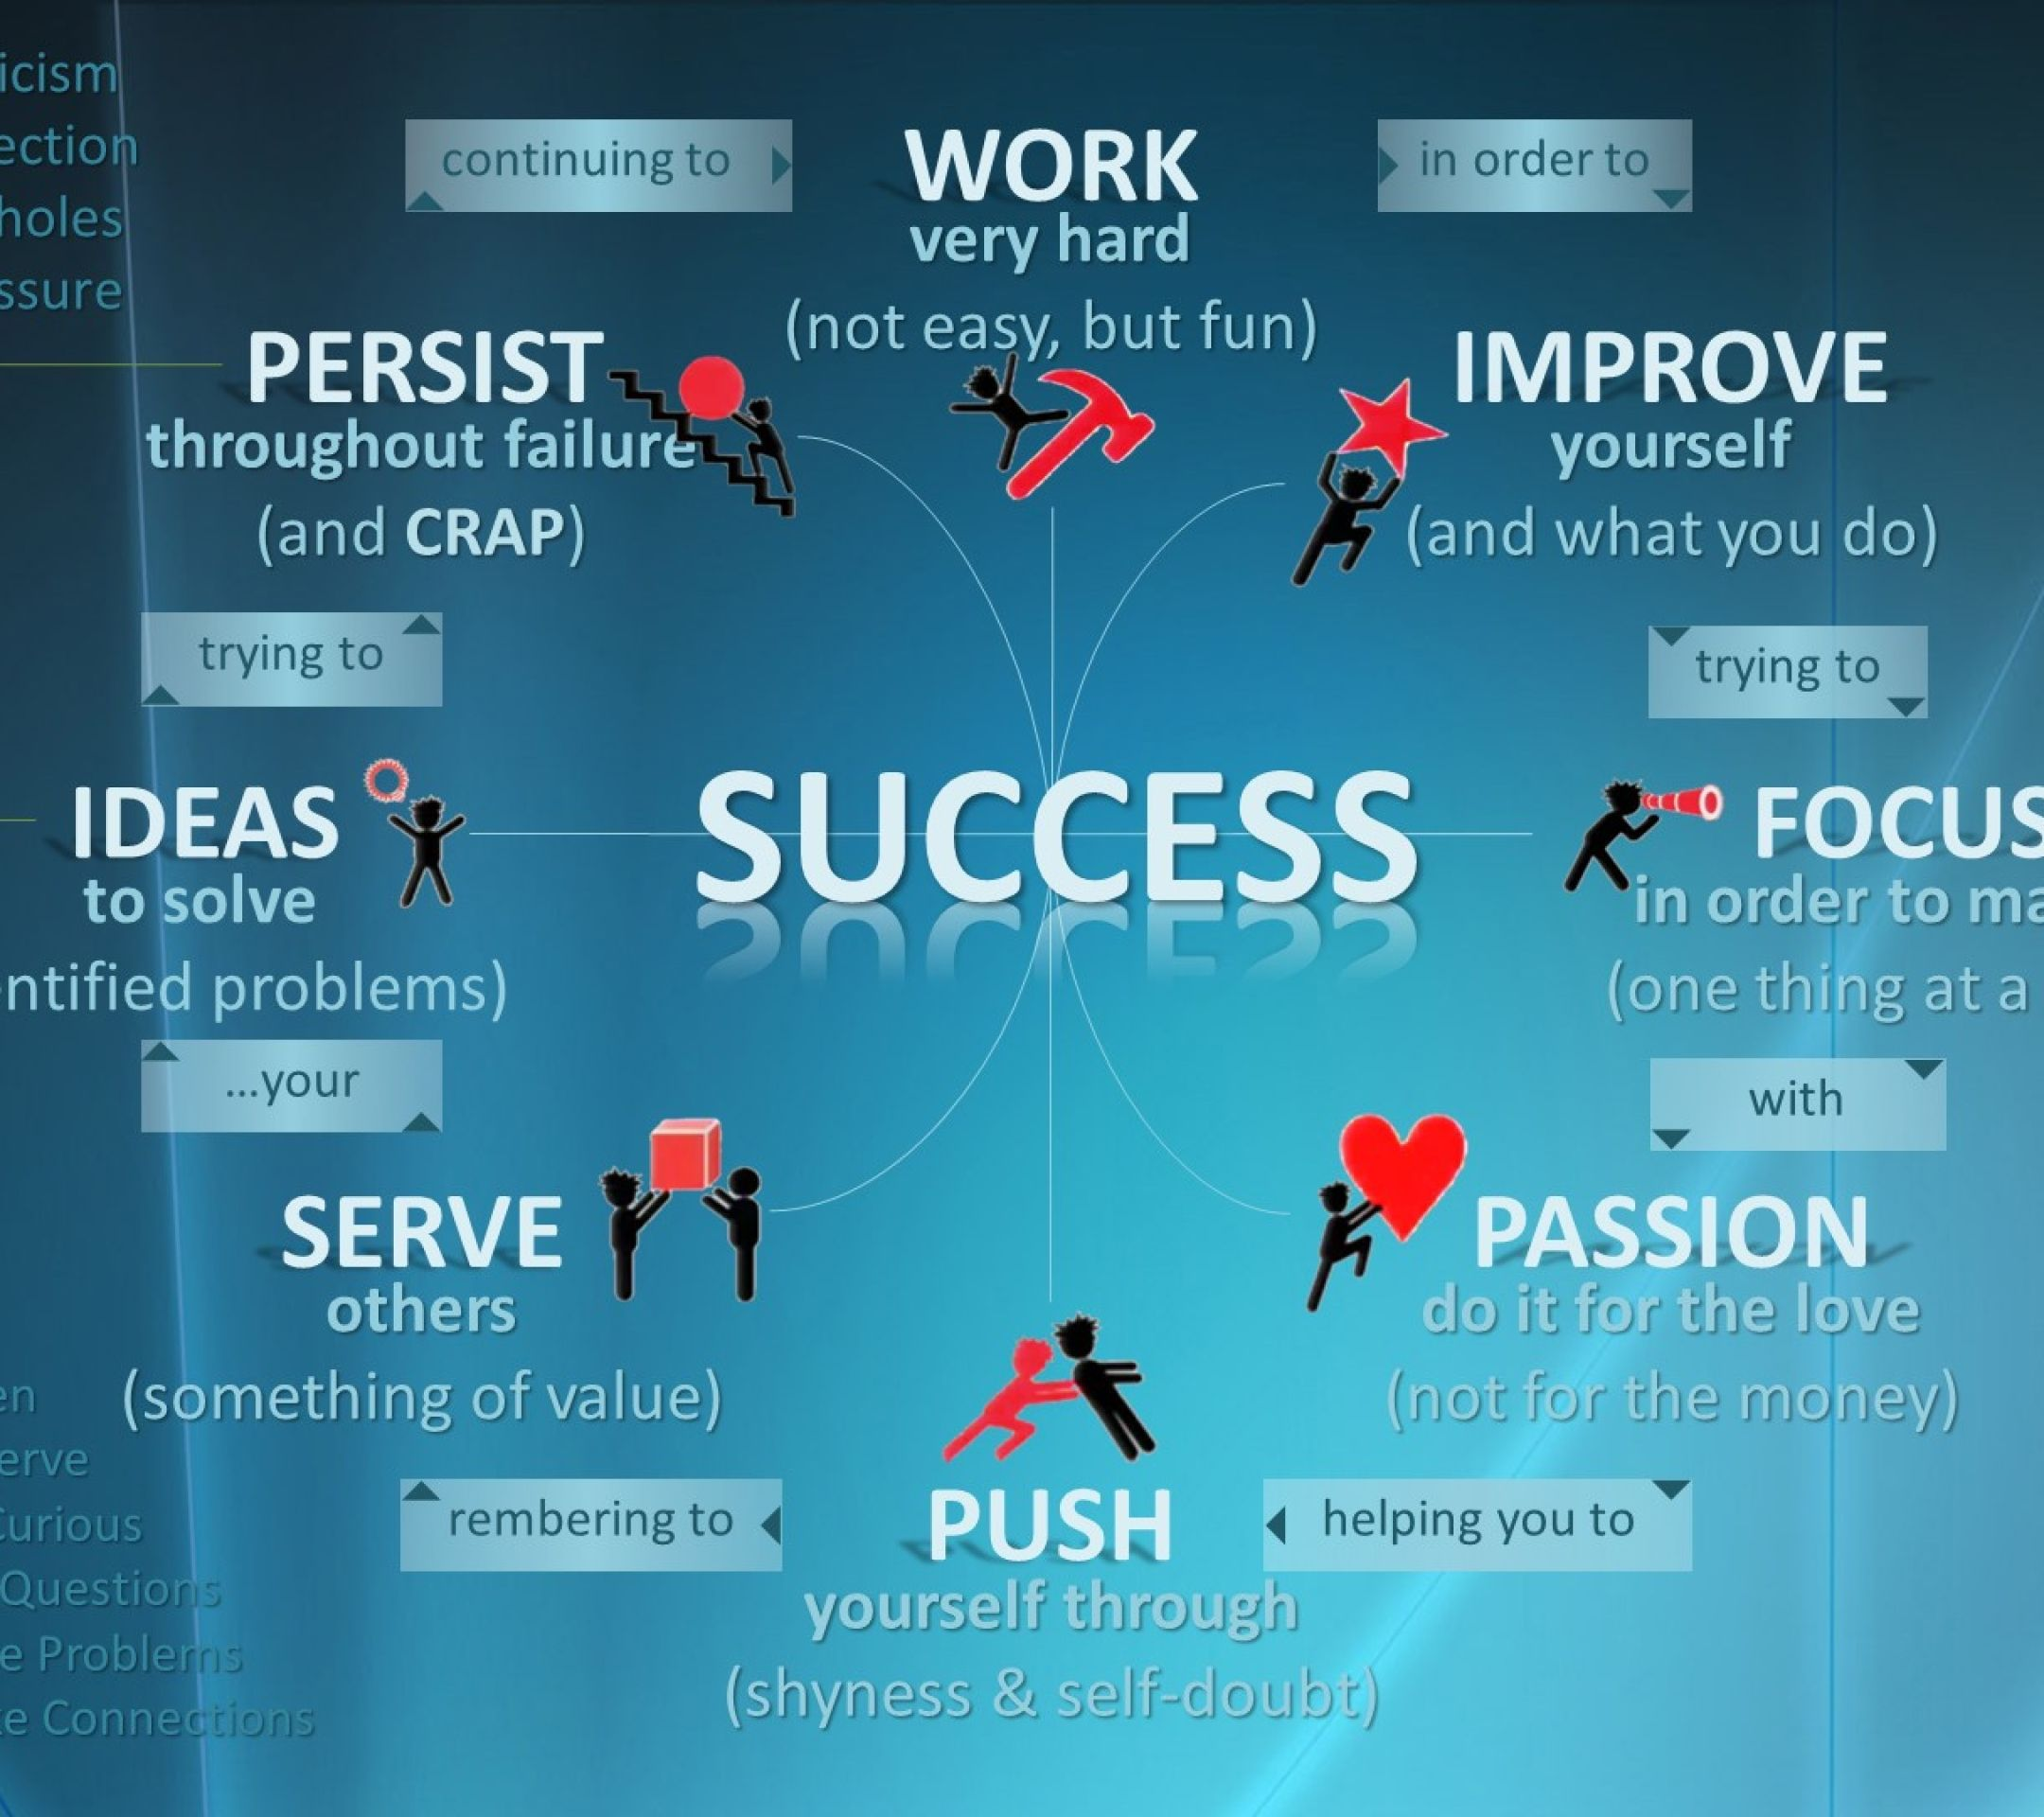 Work Very Hard Inspirational Quotes With Images Image Quotes Work Success